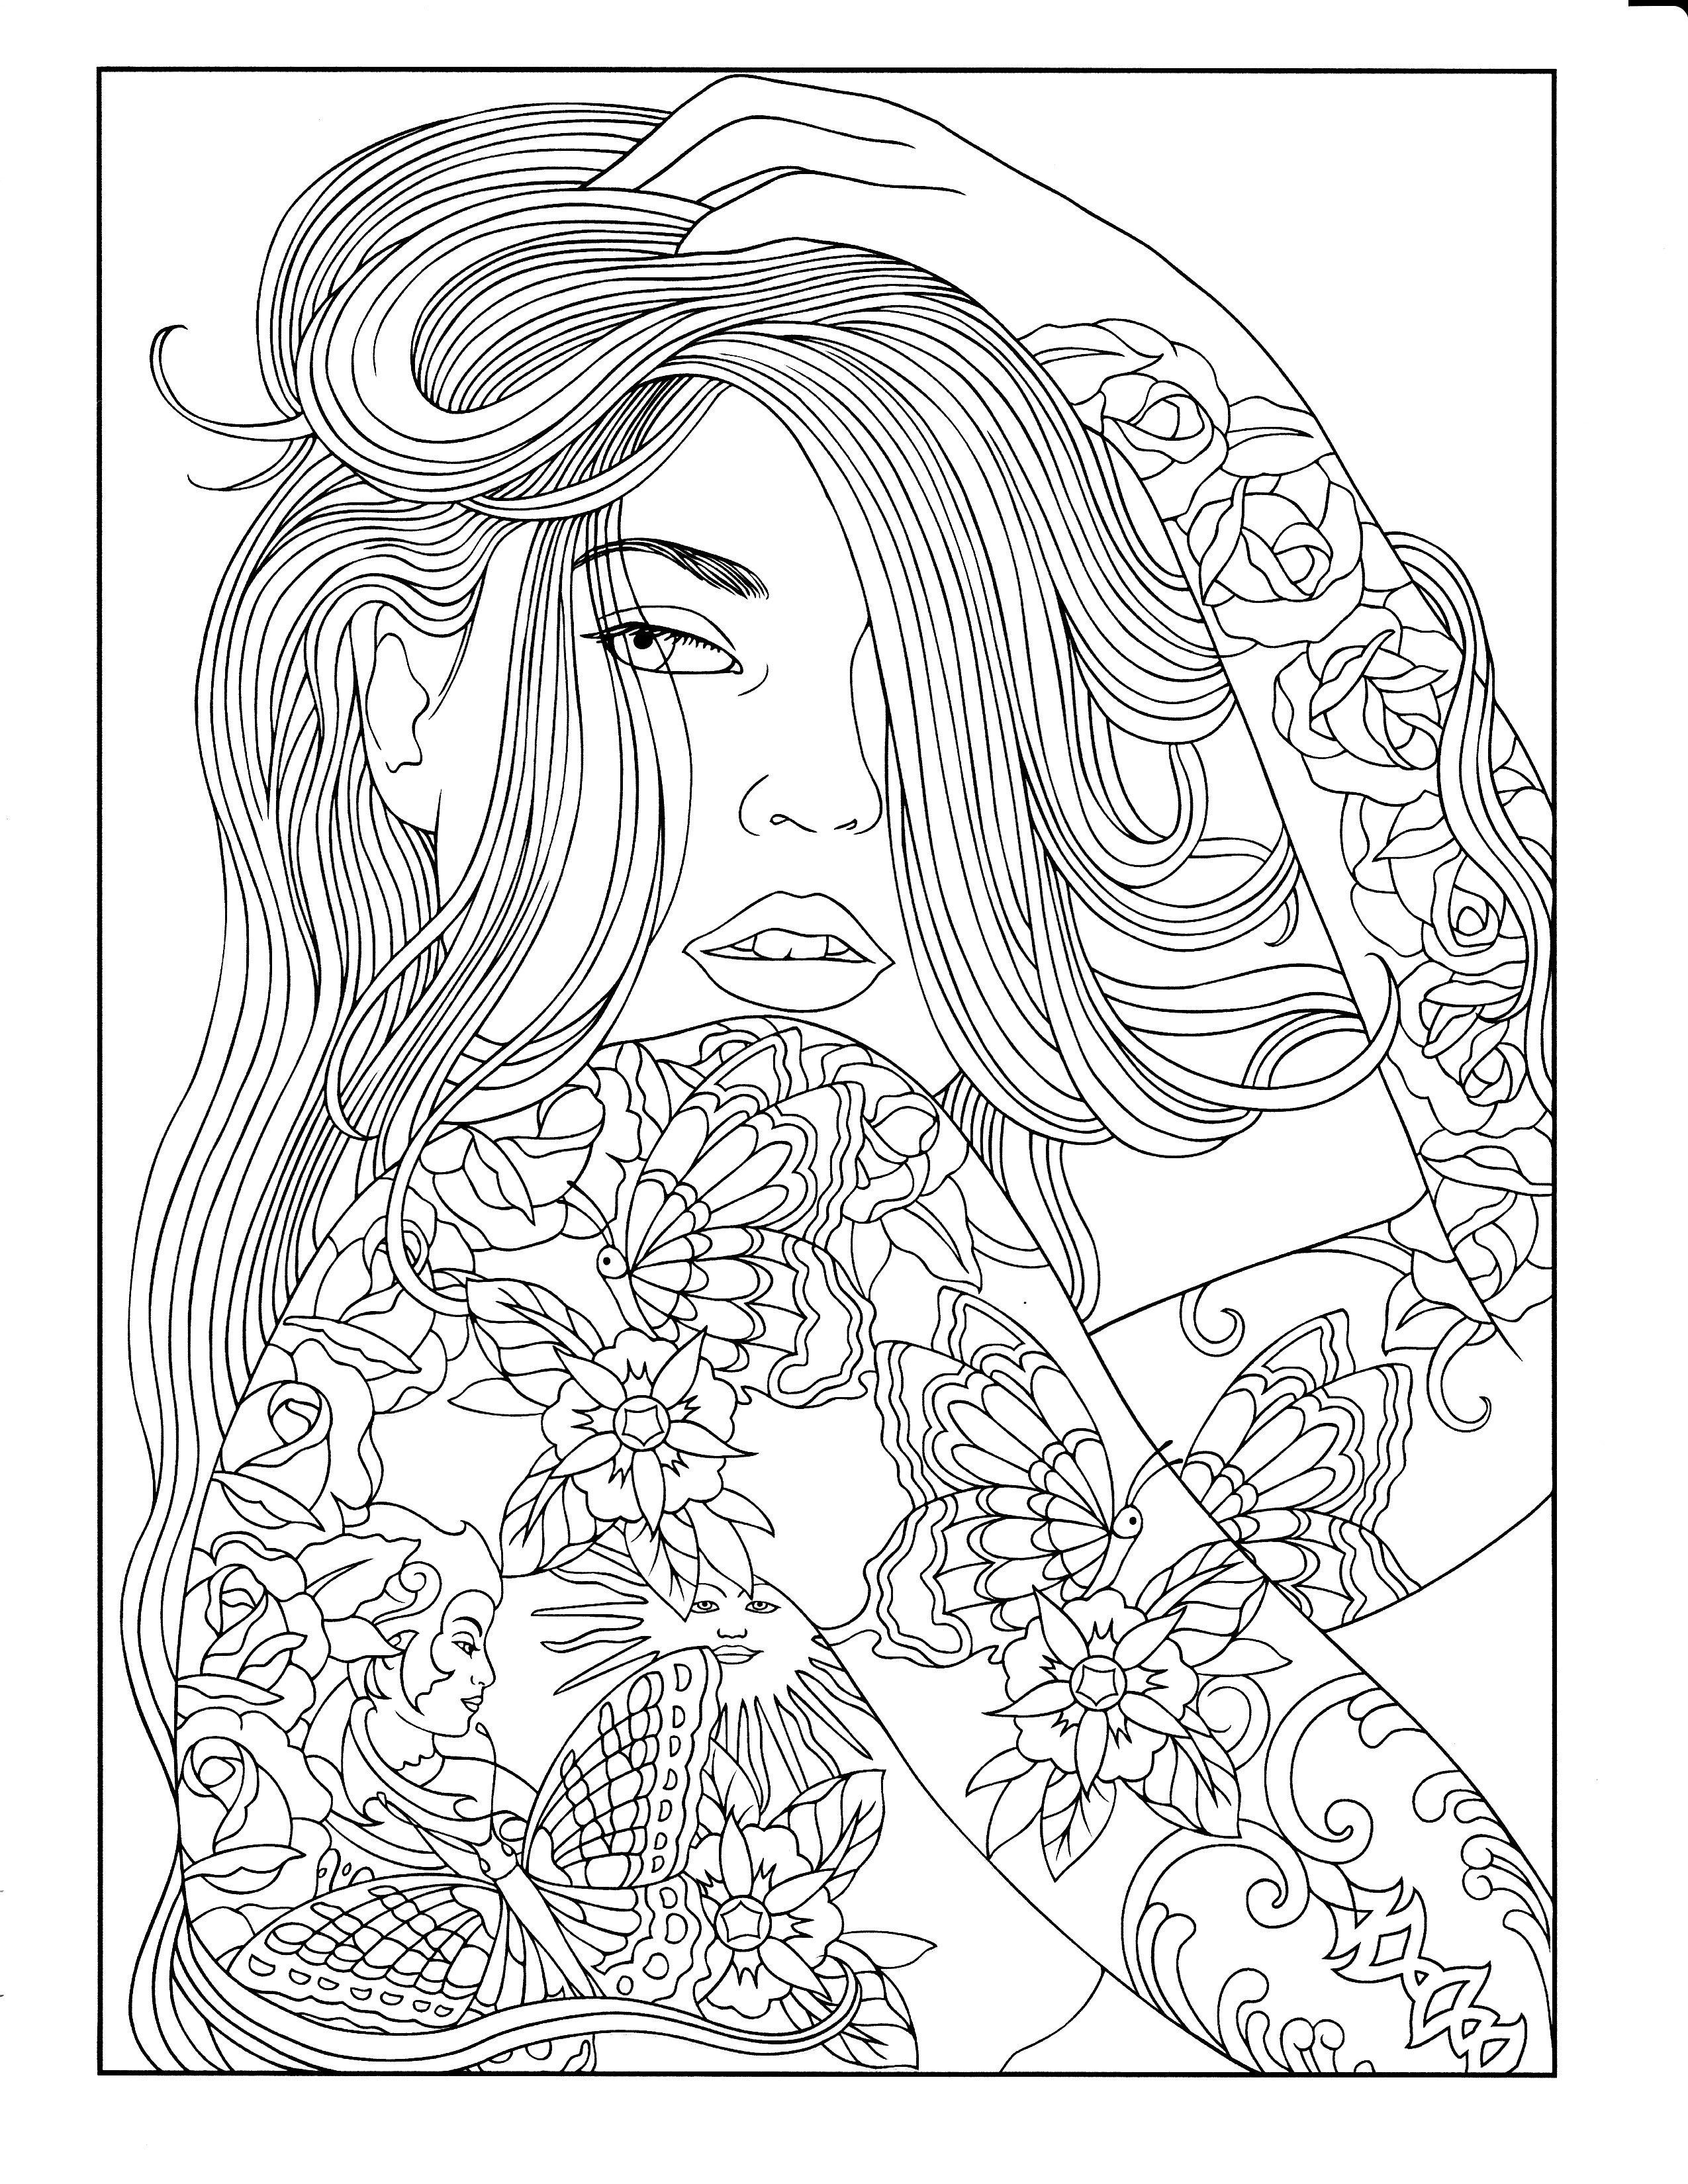 Grab Your Fresh Coloring Pages People Free Https Www Gethighit Com Fresh Coloring Pages People Coloring Pages Animal Coloring Pages Mandala Coloring Pages